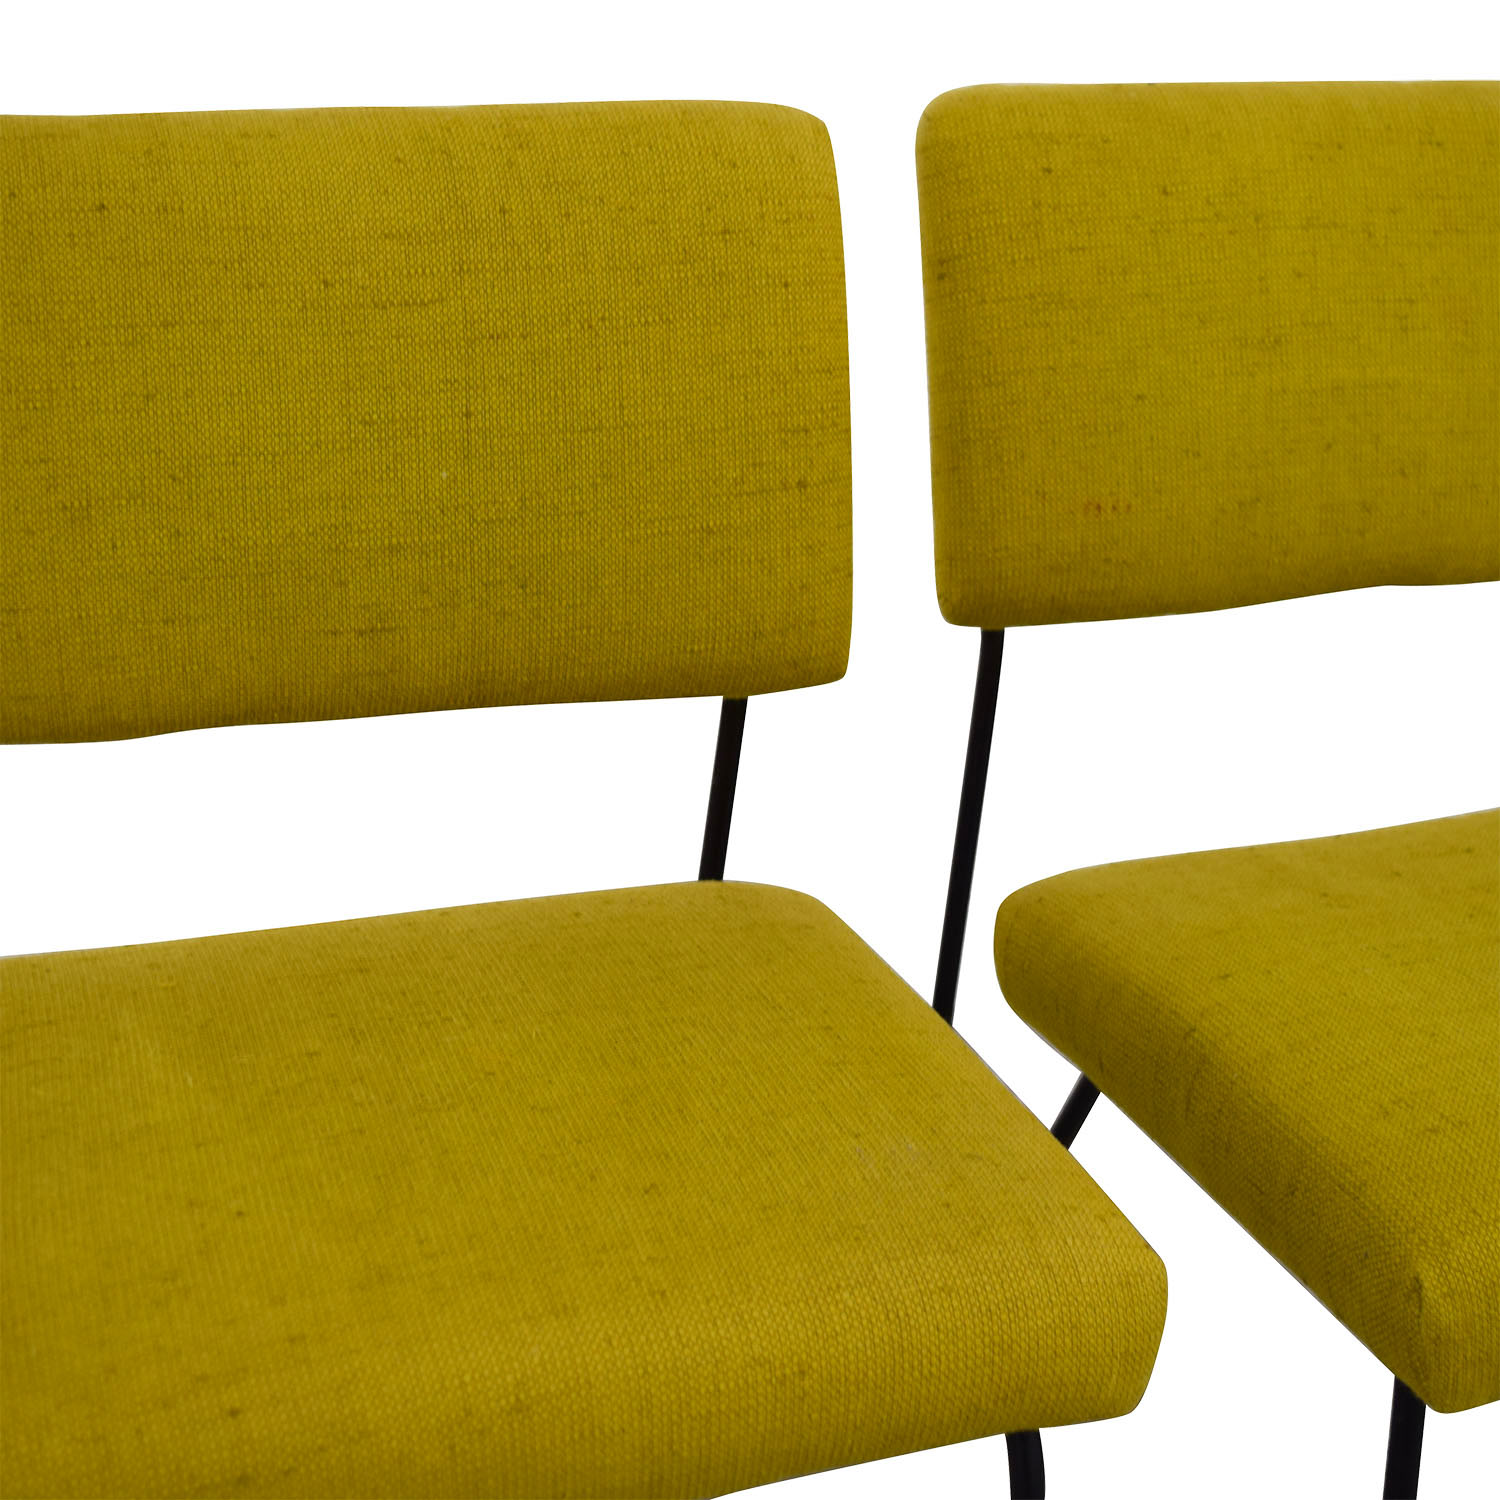 Furniture Masters Green Fabric and Metal Chairs / Chairs